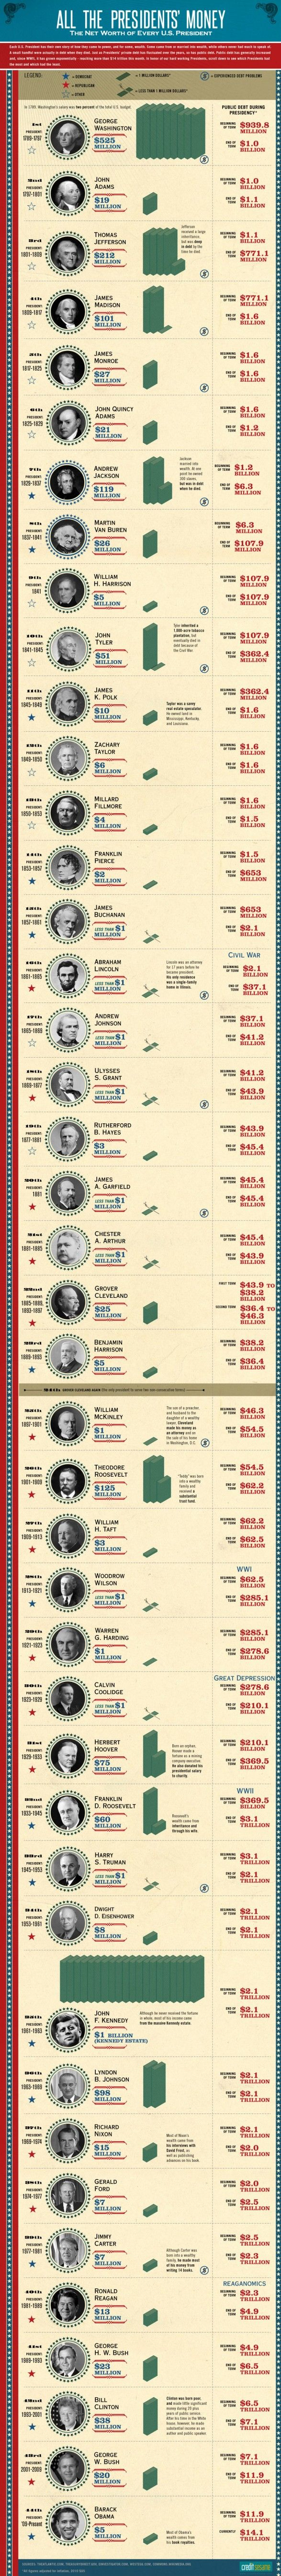 All the Presidents' Money